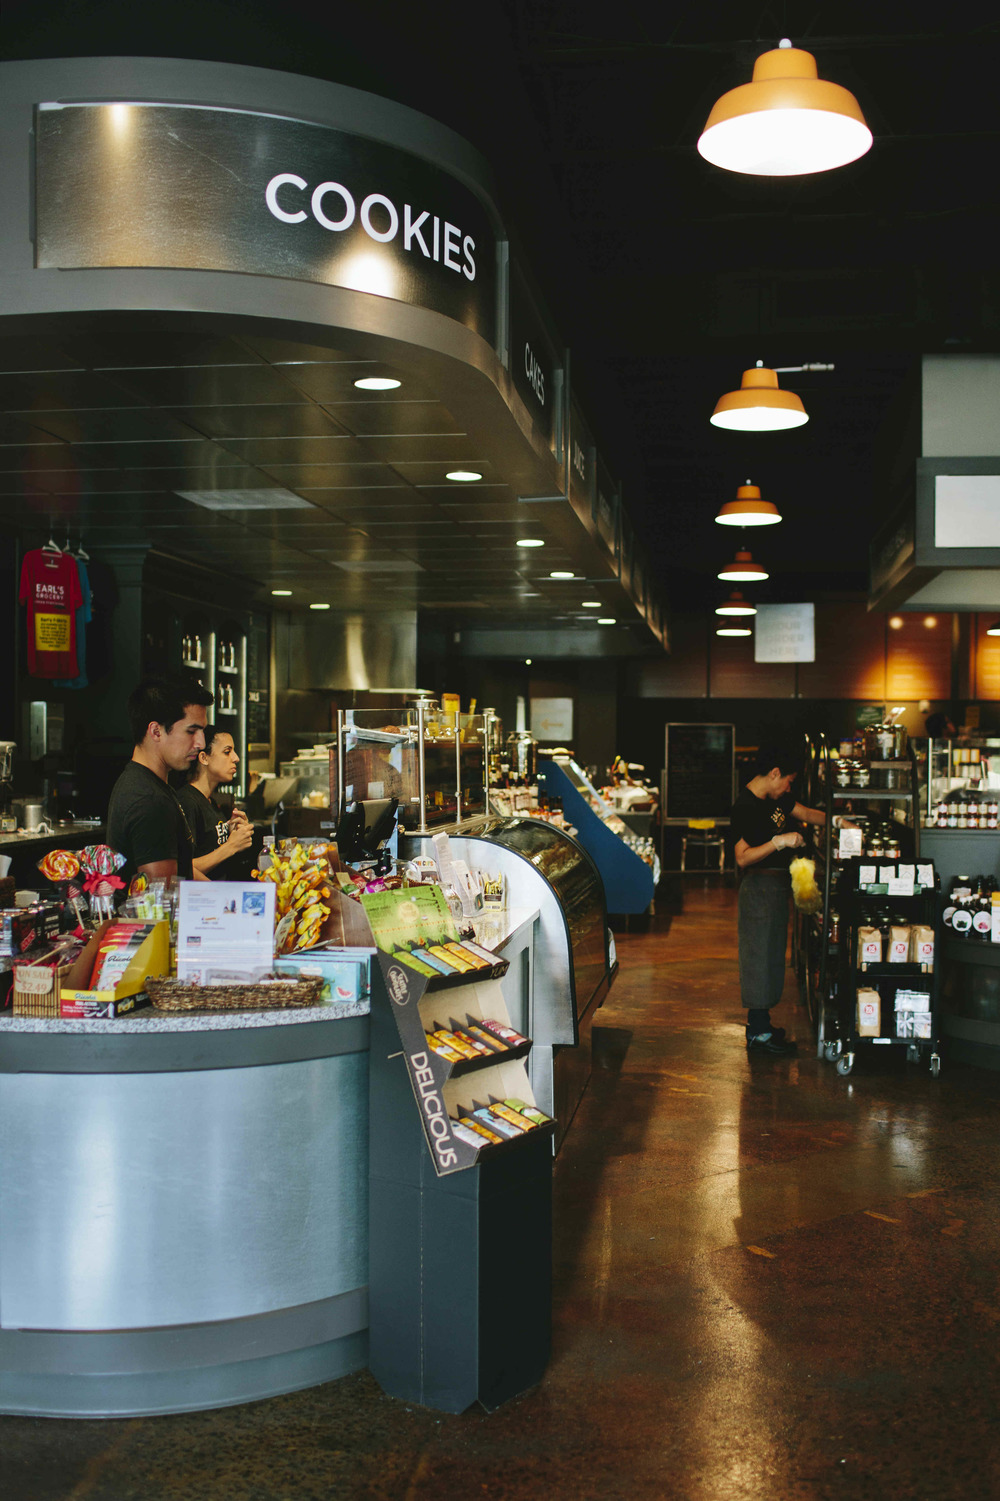 AshevilleFolk Summer City Guide: Charlotte, NC with Megan Gielow. Earl's Grocery.     Quaint deli with diverse food options.